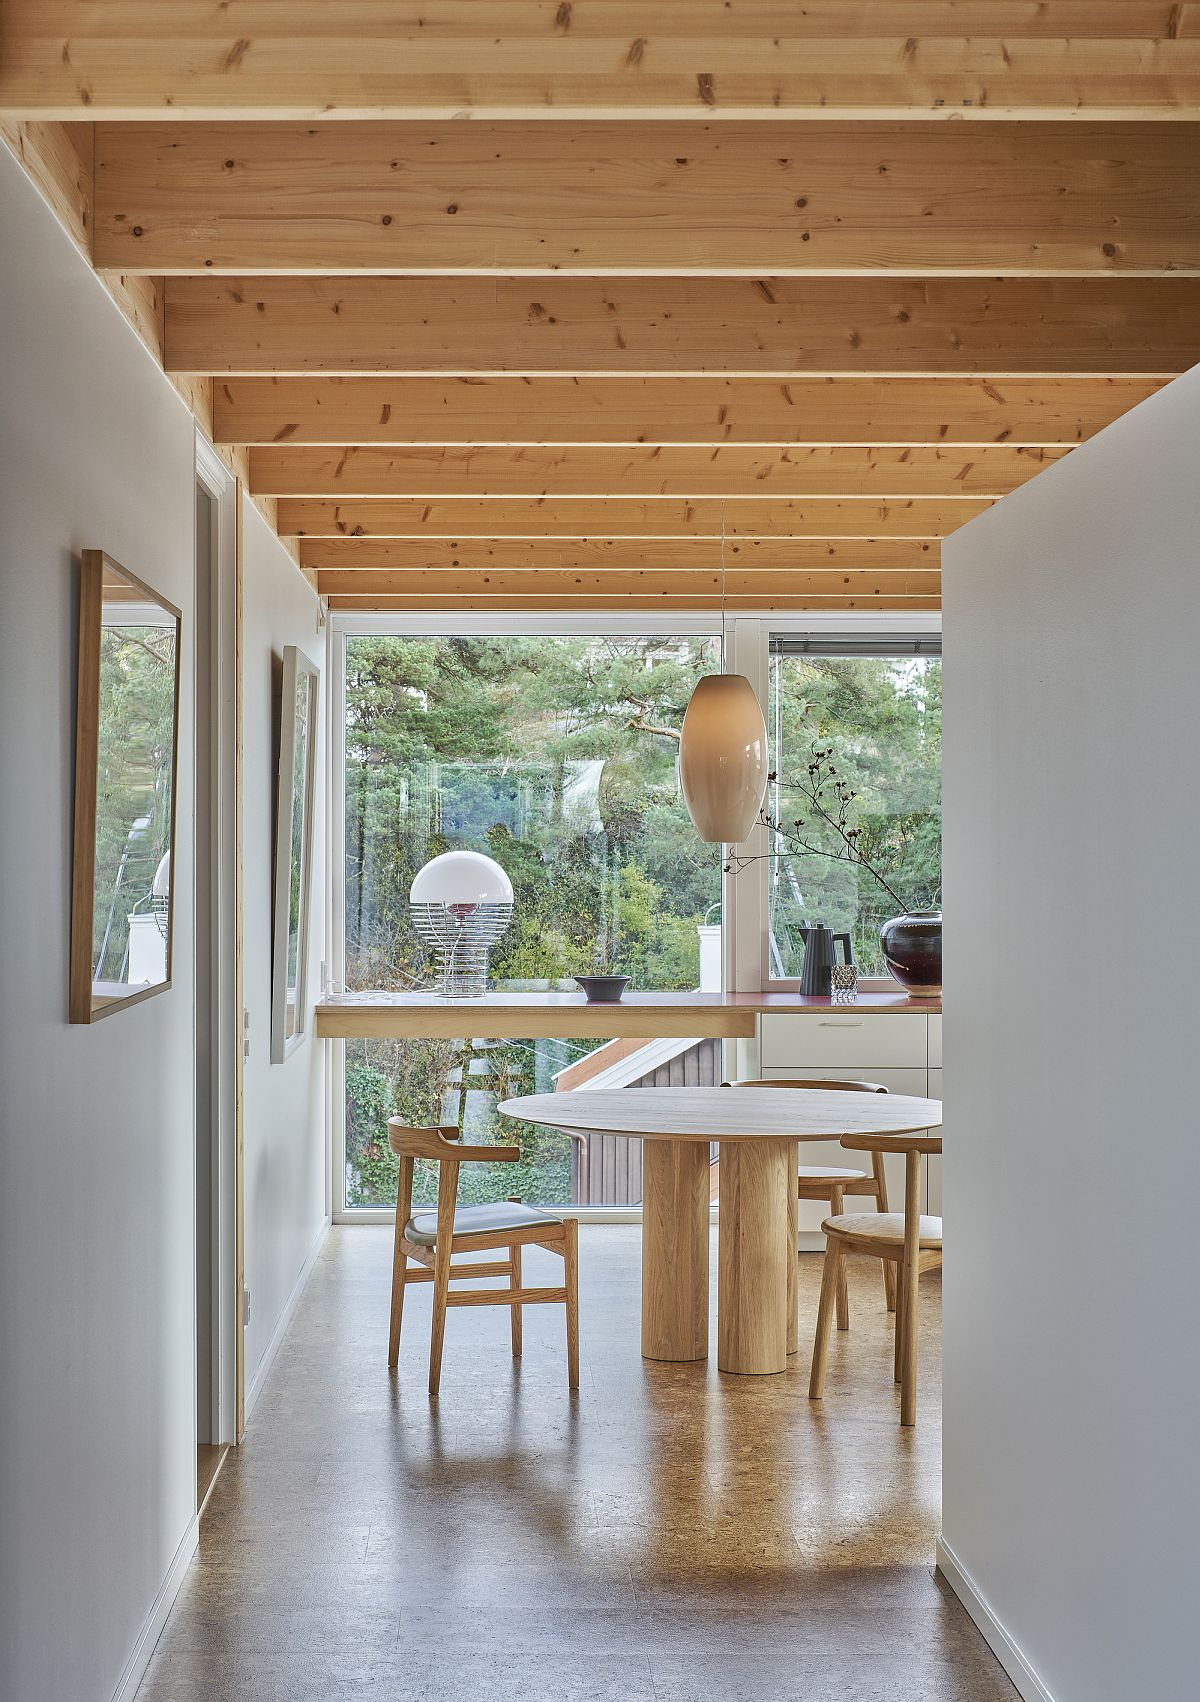 Light-filled and cheerful white and wood interior of the house